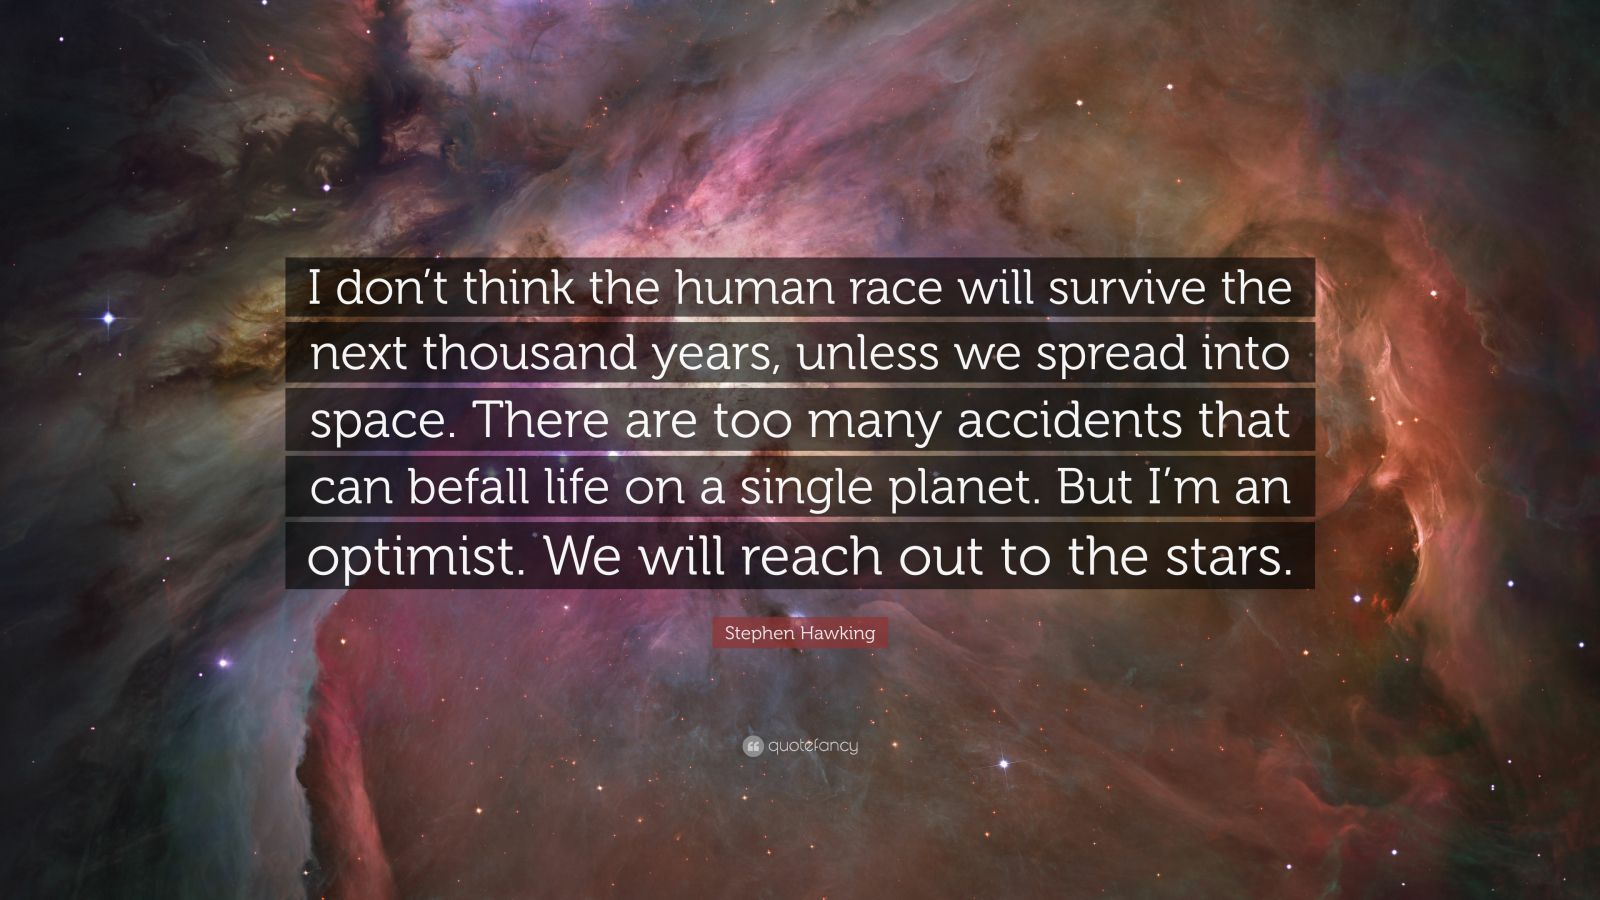 """Stephen Hawking Quote: """"I don't think the human race will survive the next thousand years, unless we spread into space. There are too many accidents that can befall life on a single planet. But I'm an optimist. We will reach out to the stars."""""""